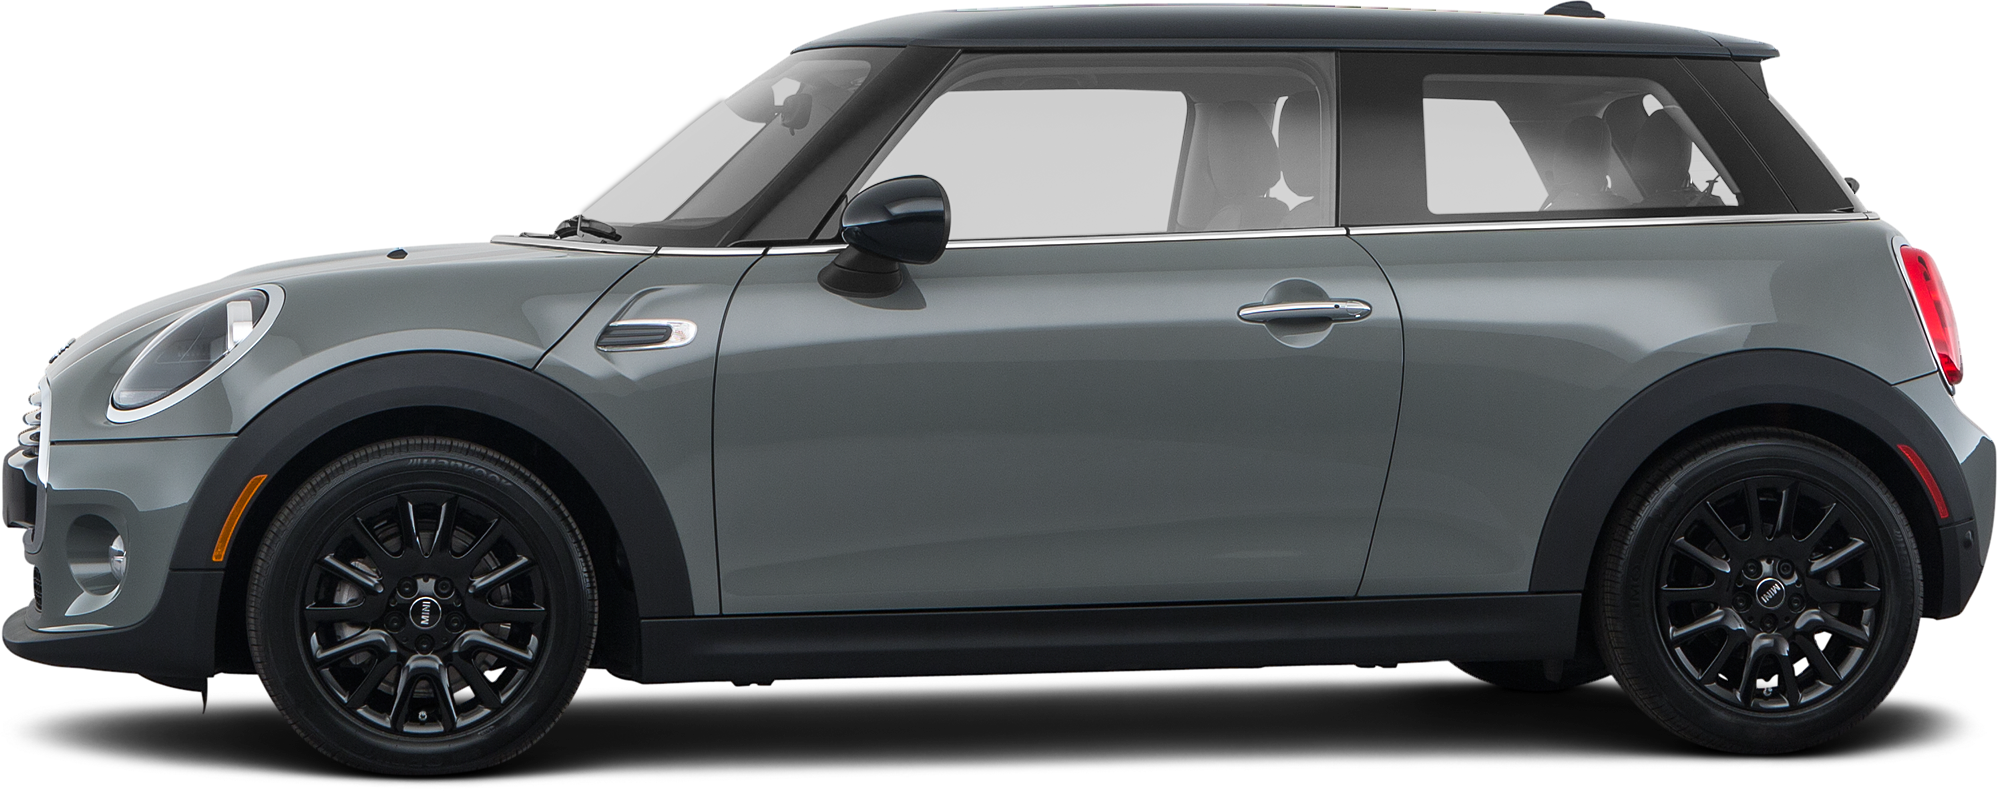 2019 MINI Hardtop 2 Door Hatchback Cooper Classic